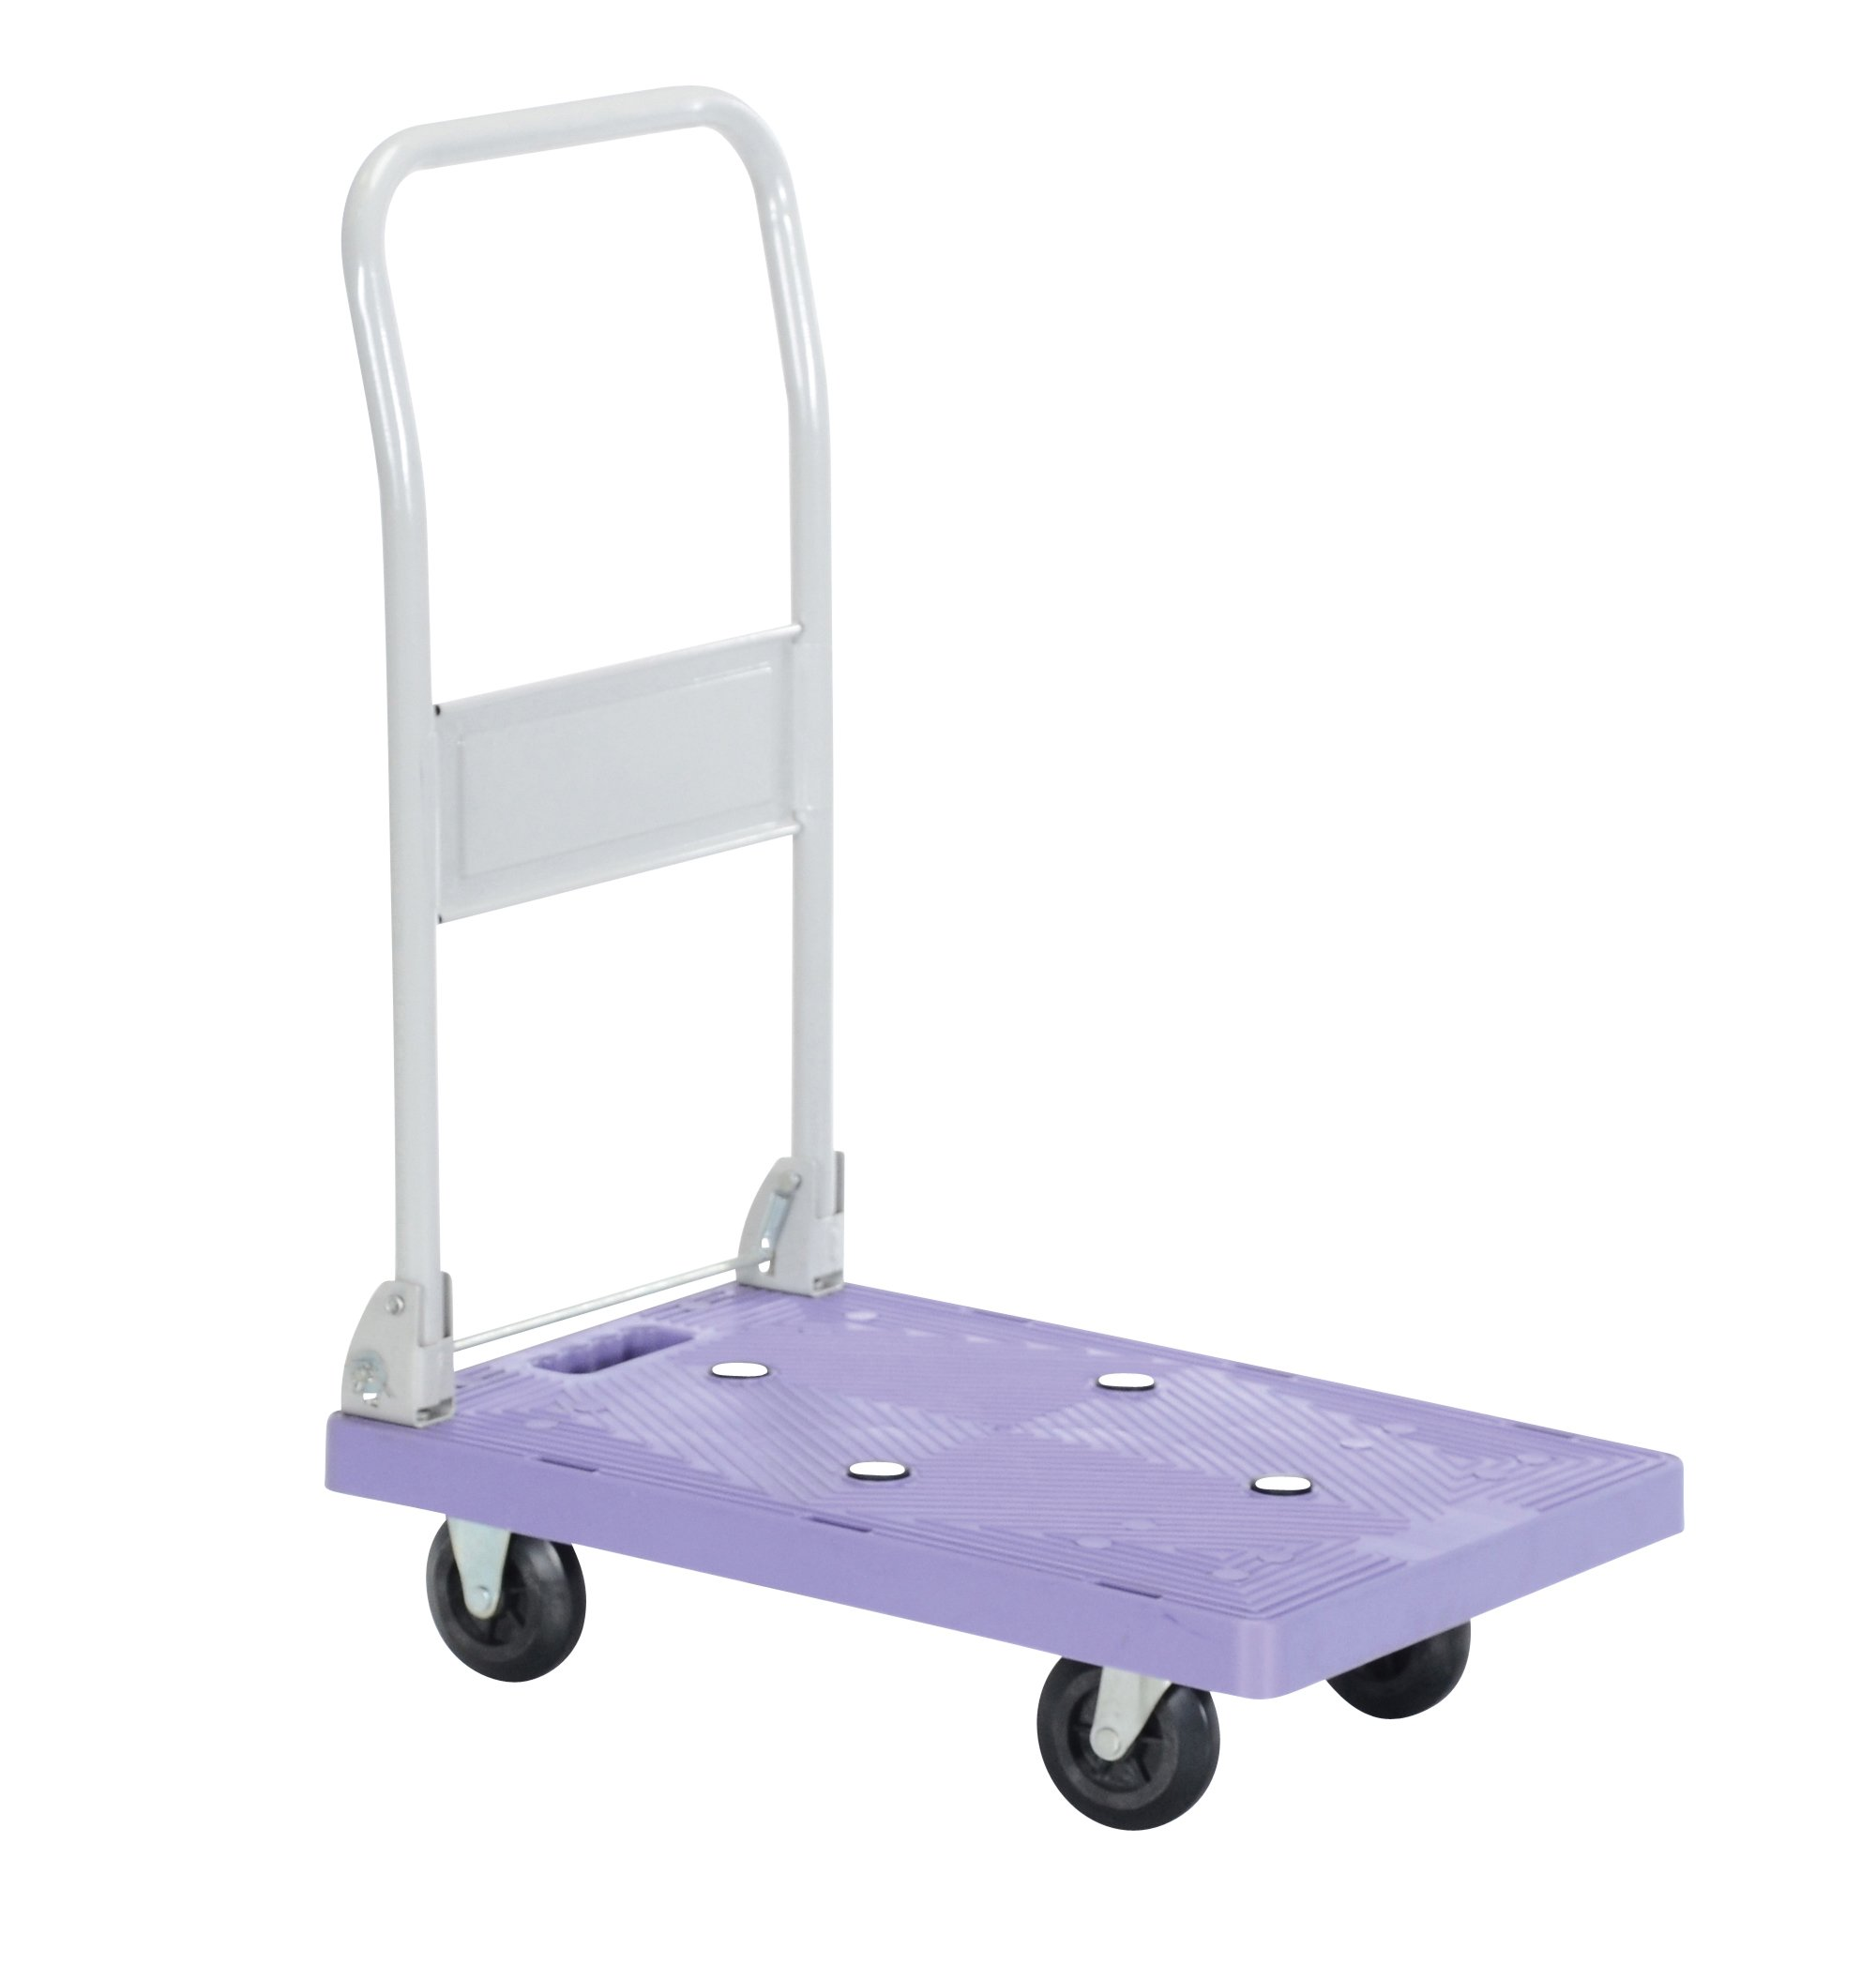 Vestil FPT-1624 Plastic Platform Truck with Fold Down Handle, 250 lbs Capacity, 23-3/4'' Length x 15-3/4'' Width x 5-1/4'' Height Deck